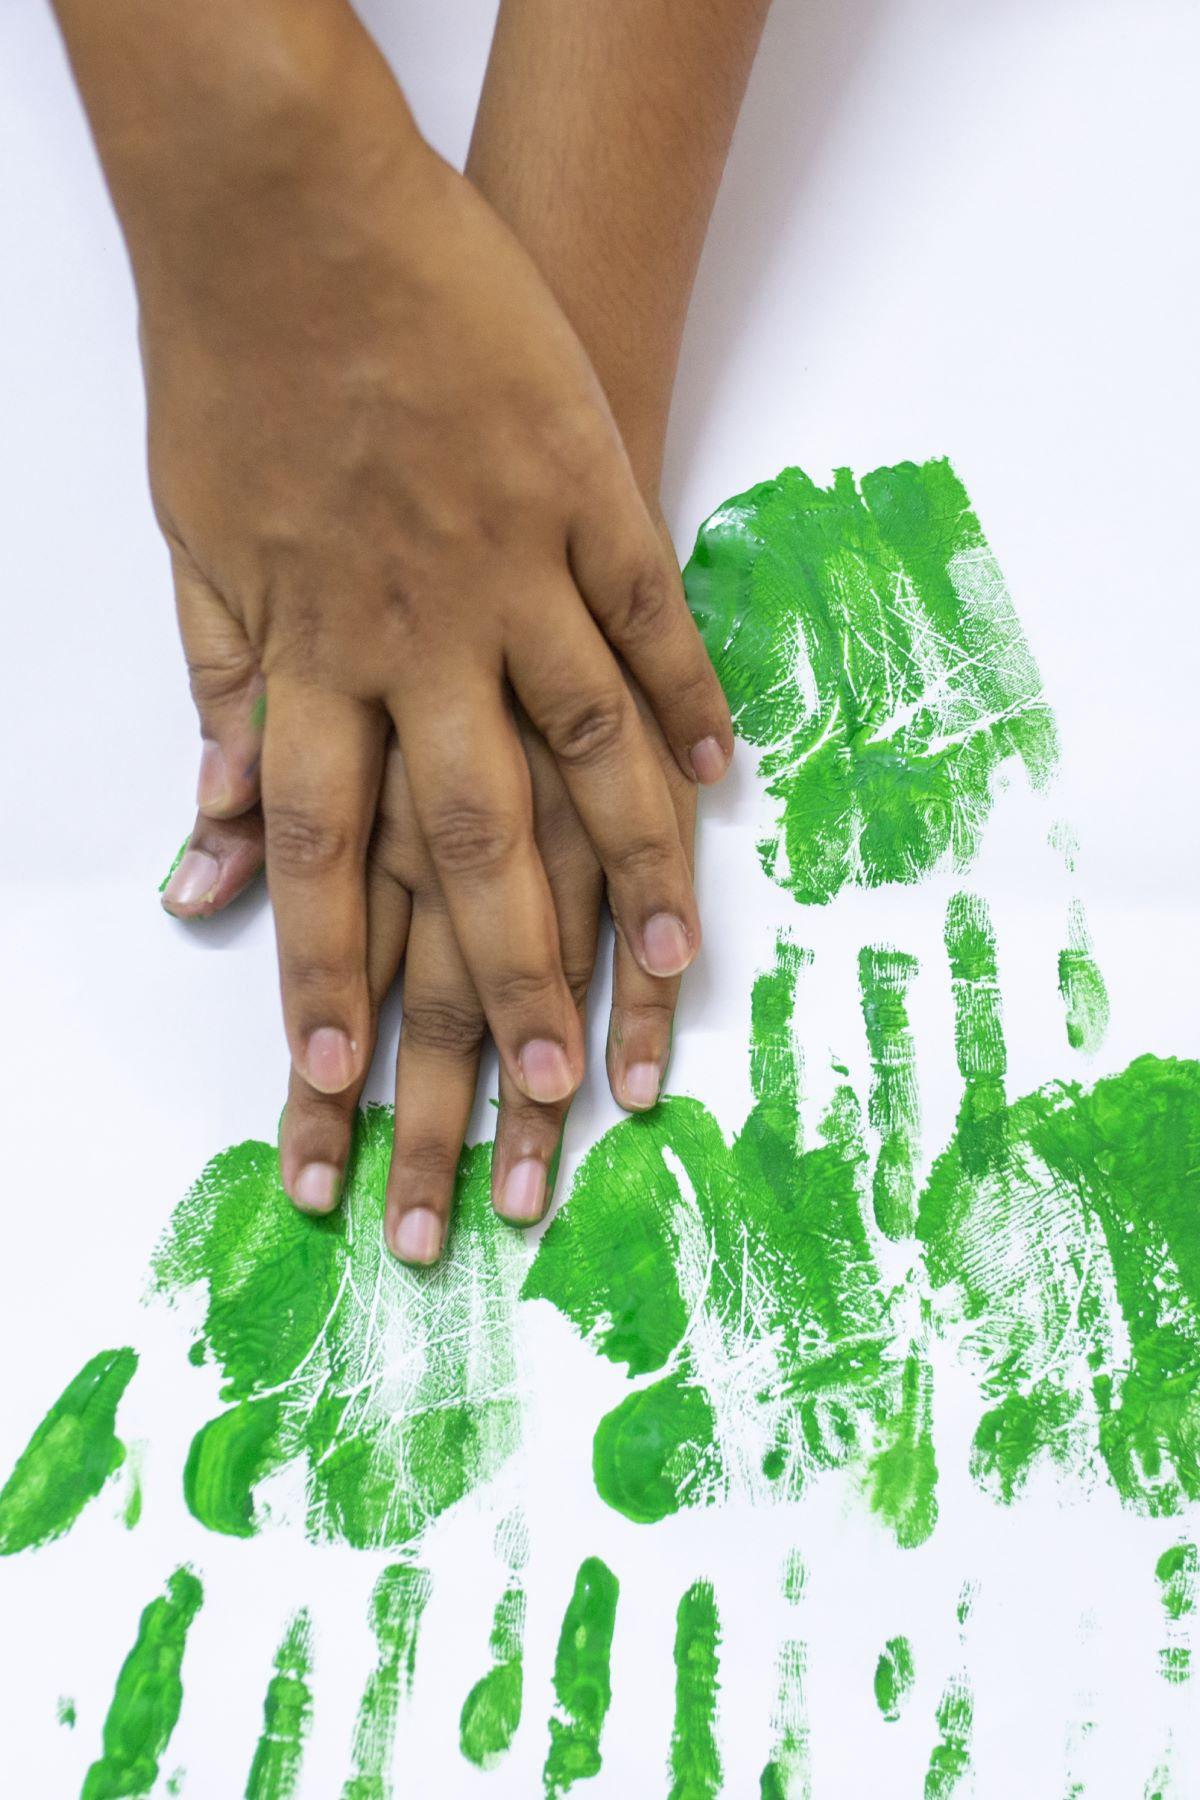 Nivrutha helping her daughter handprint on a sheet of paper to create a Christmas tree using paint on paper